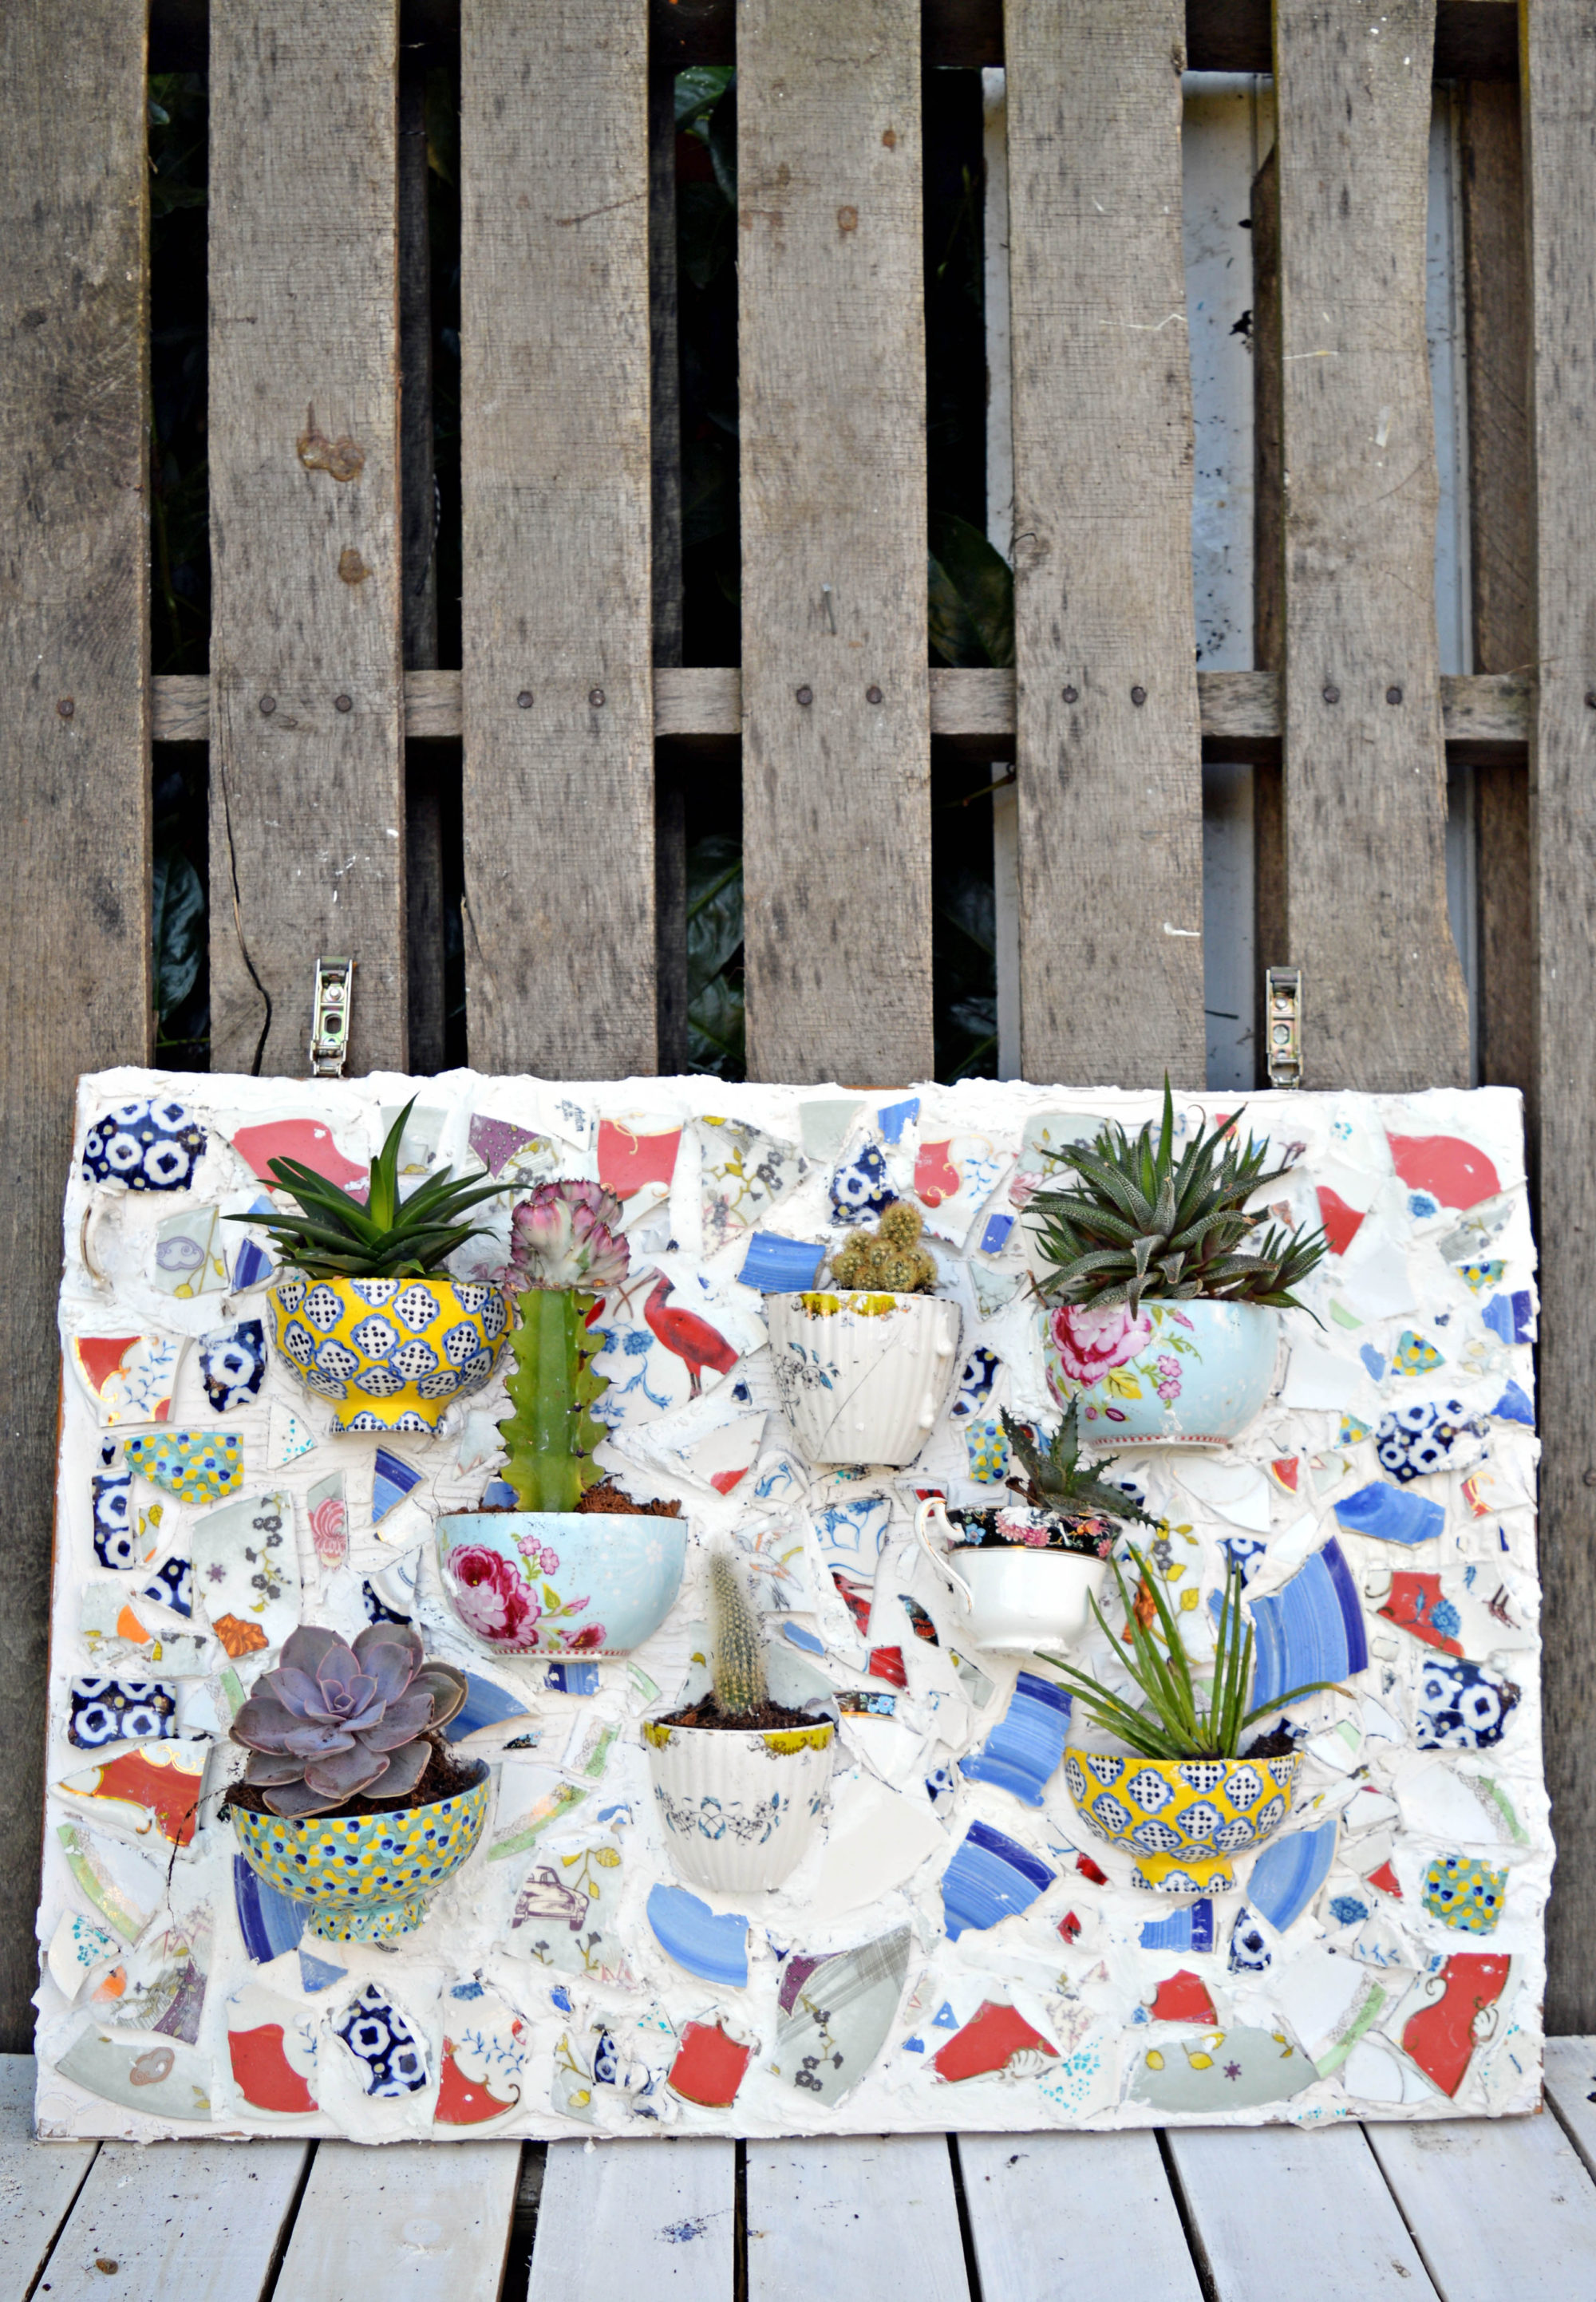 Succulents mosaic wall planter.  Made from upcycled broken crockery.  Step by step tutorial.